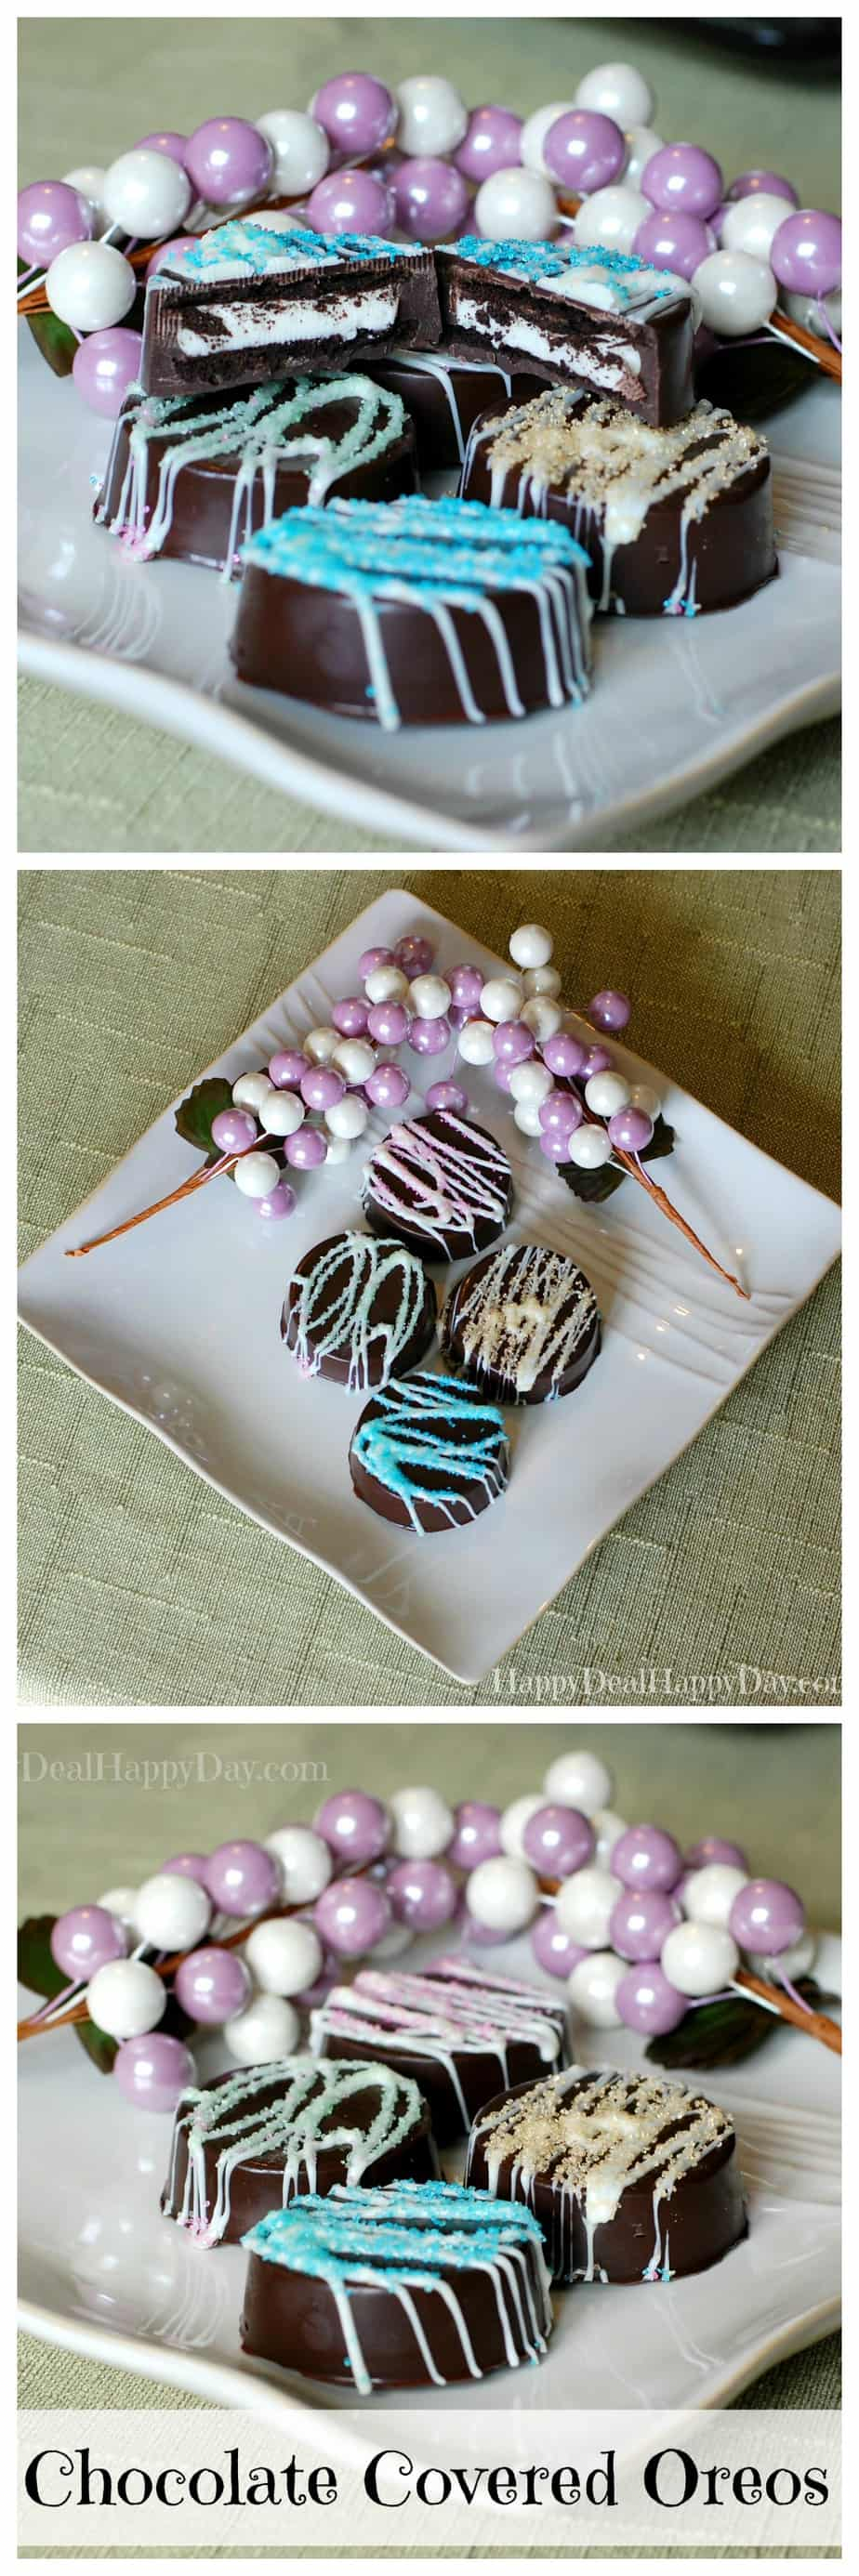 chocolate covered oreos - spring colors! These are wonderful as an Easter dessert, Mother's Day gift idea, or just a fun treat to celebrate spring!